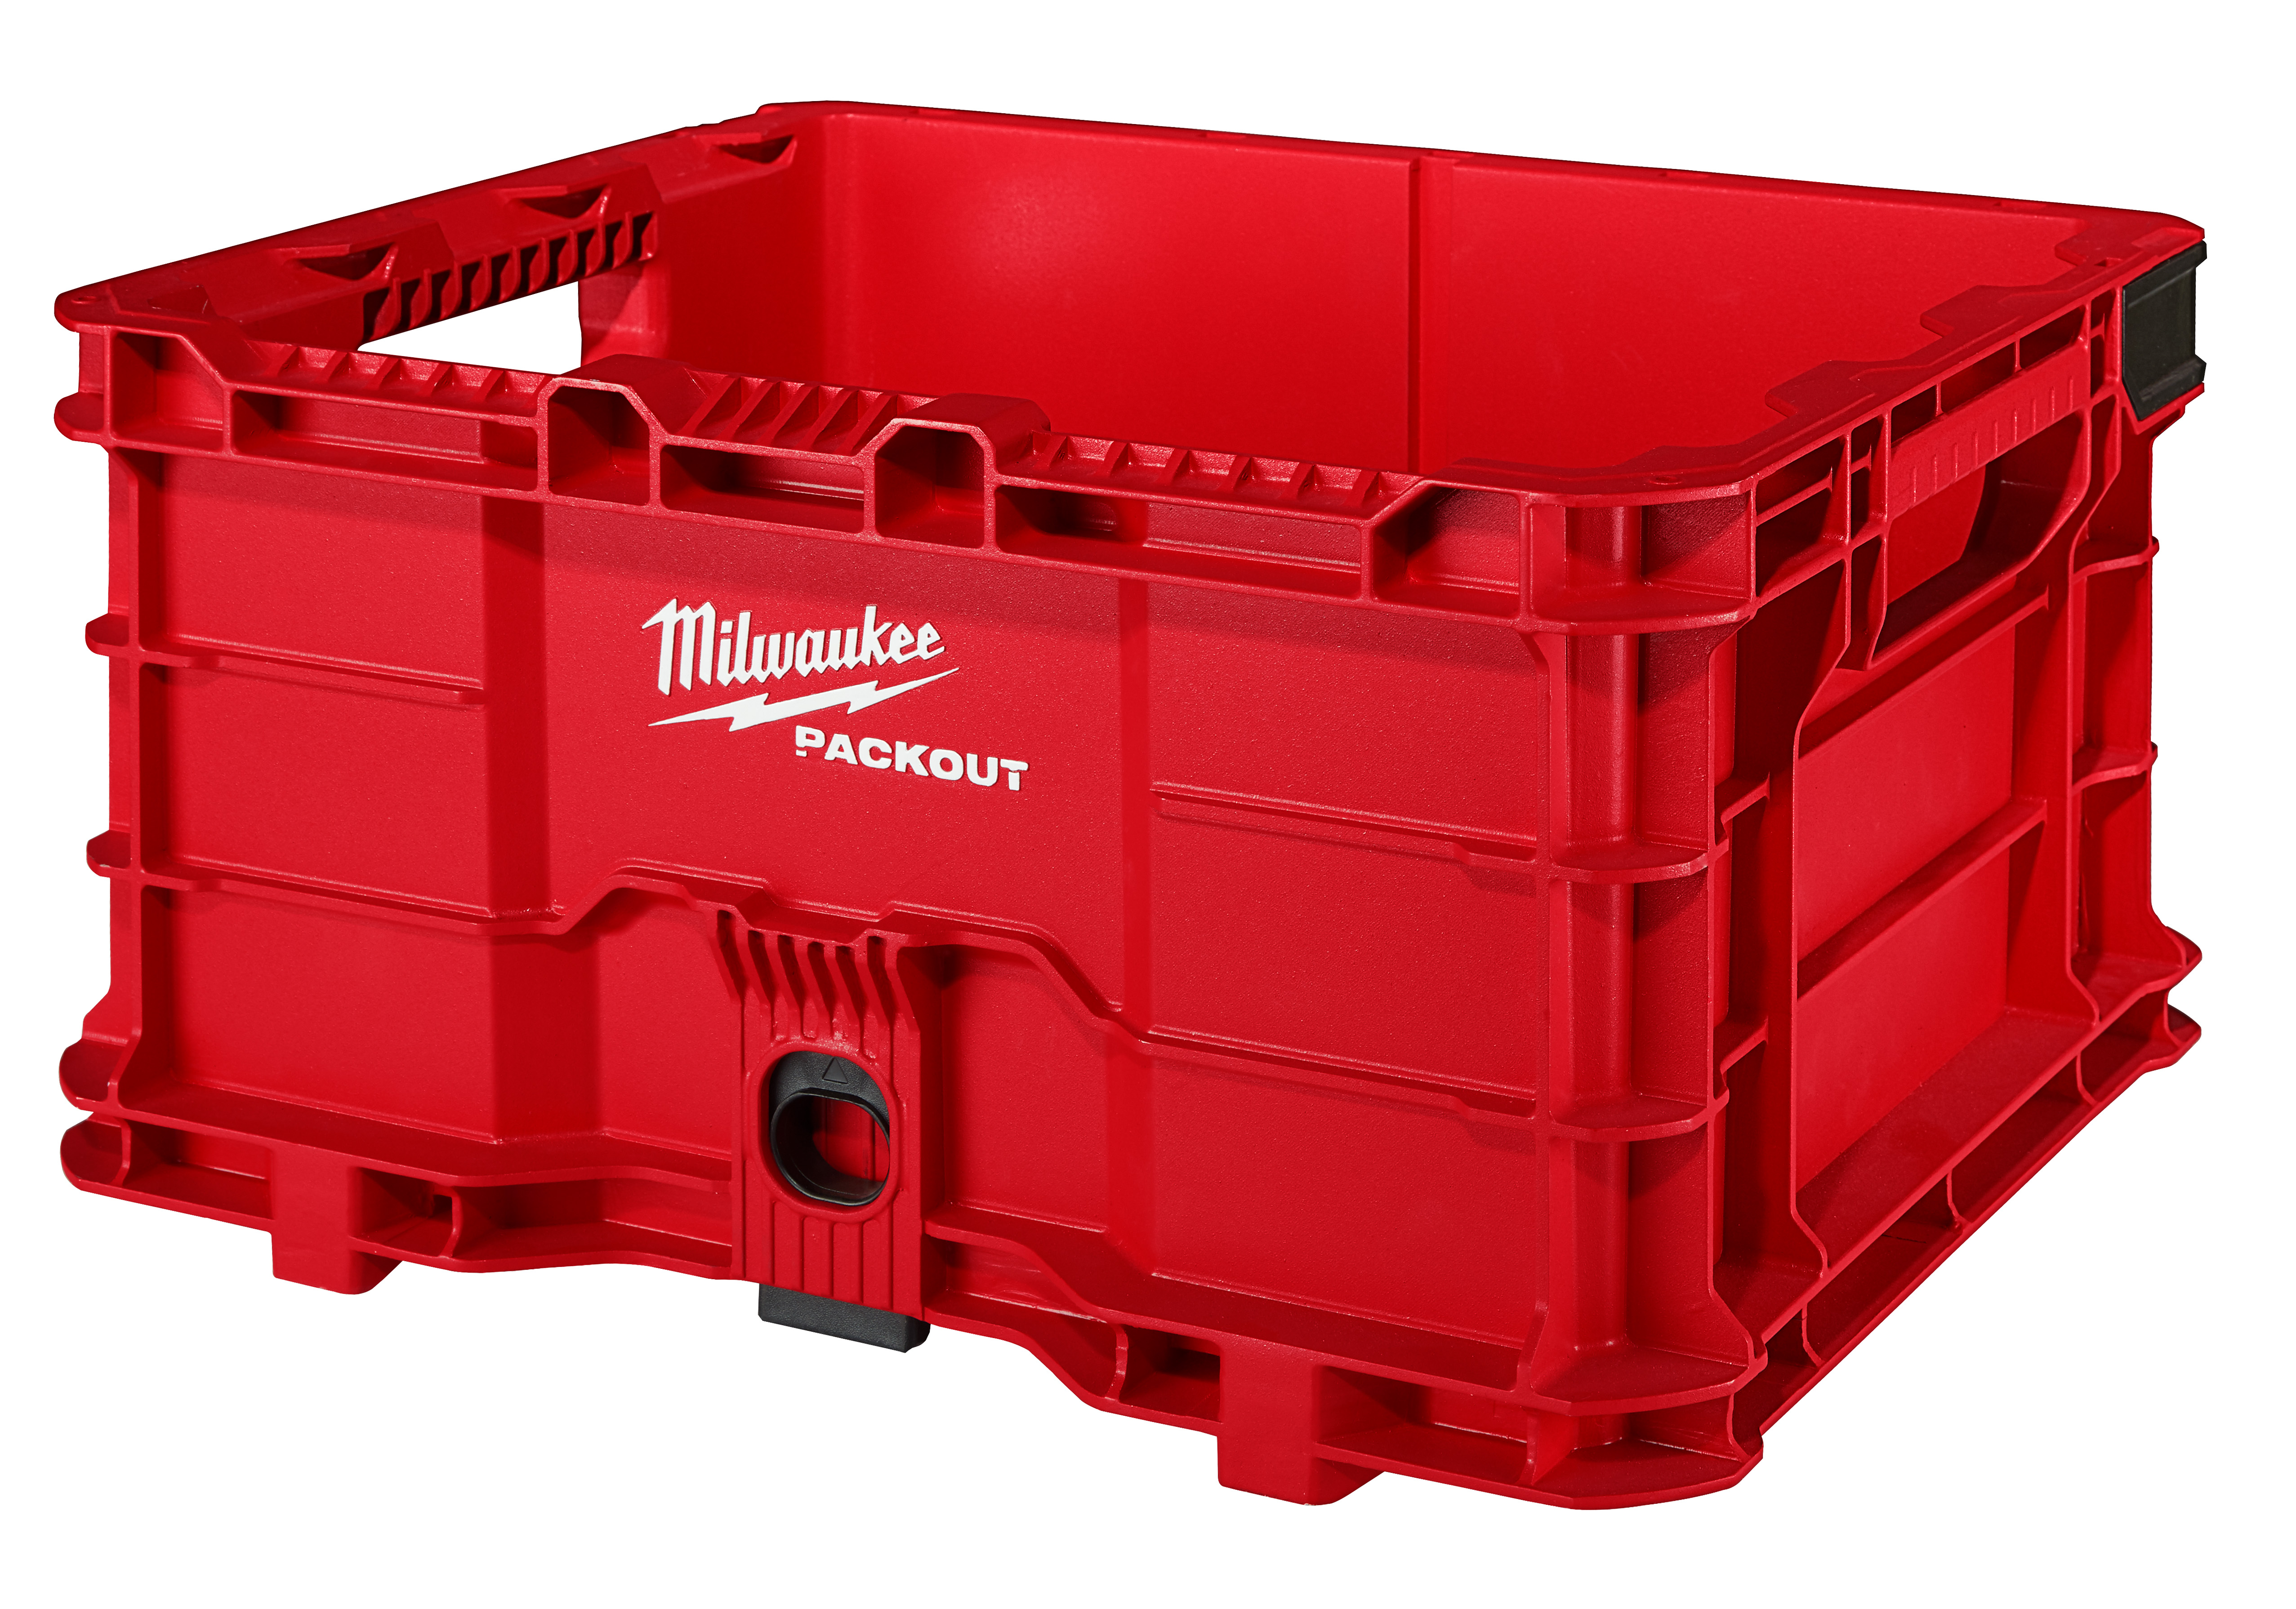 Milwaukee® 48-22-8440 Hang/Stack Crate, 9.9 in H x 18.6 in W x 15.4 in D, Plastic, Red